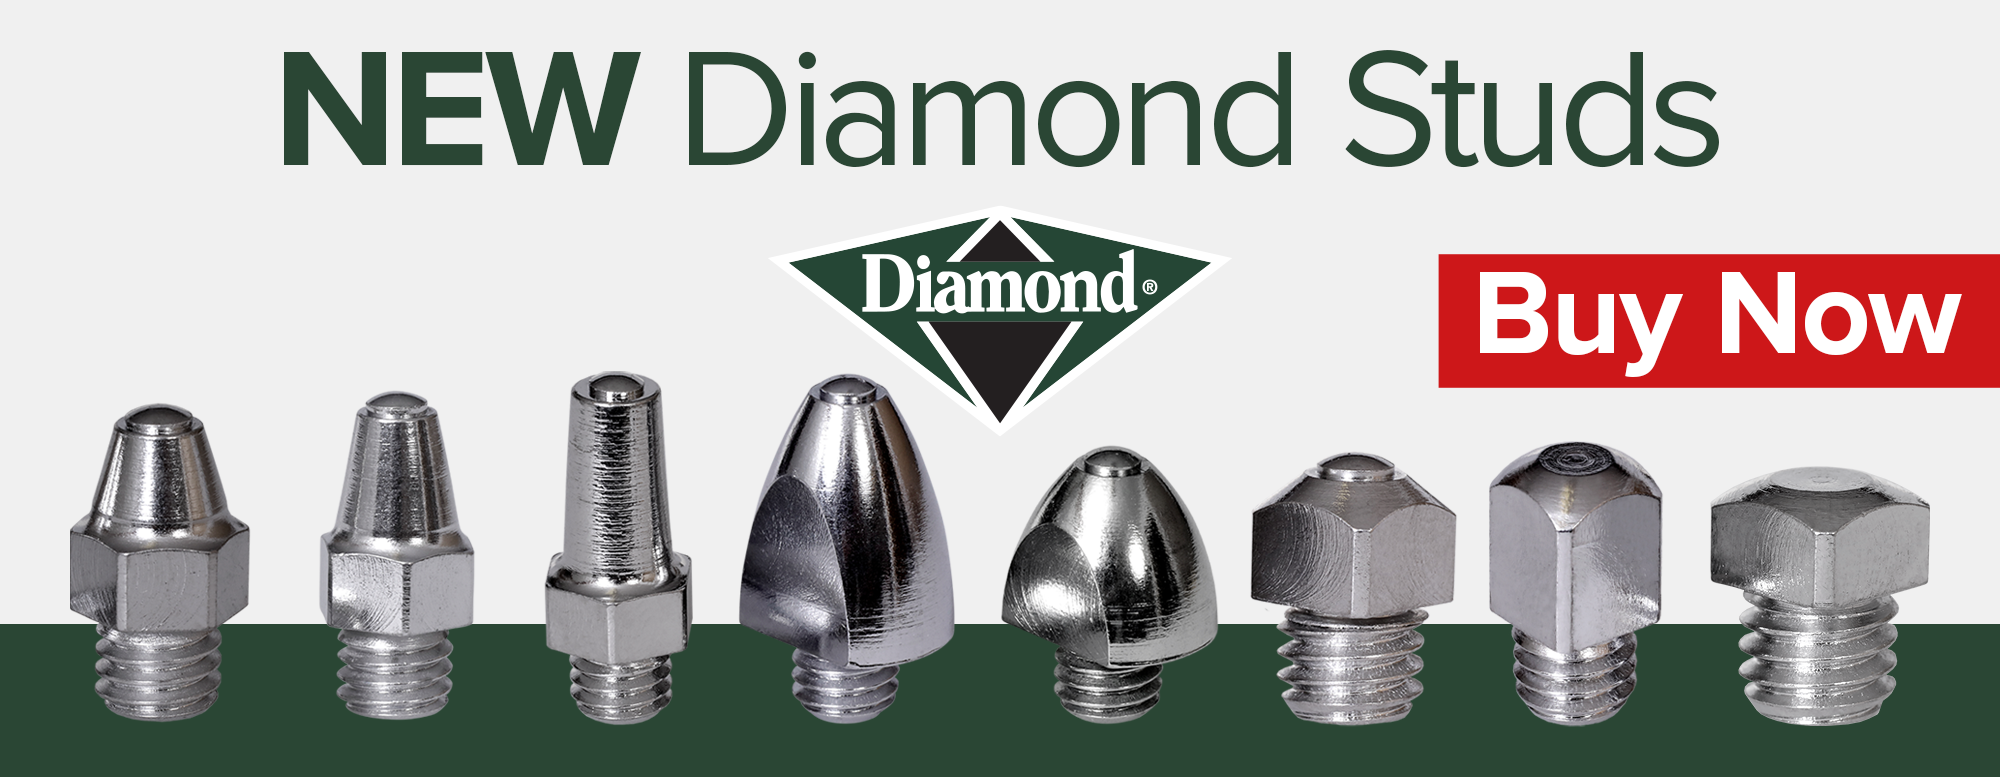 Diamond stud banner